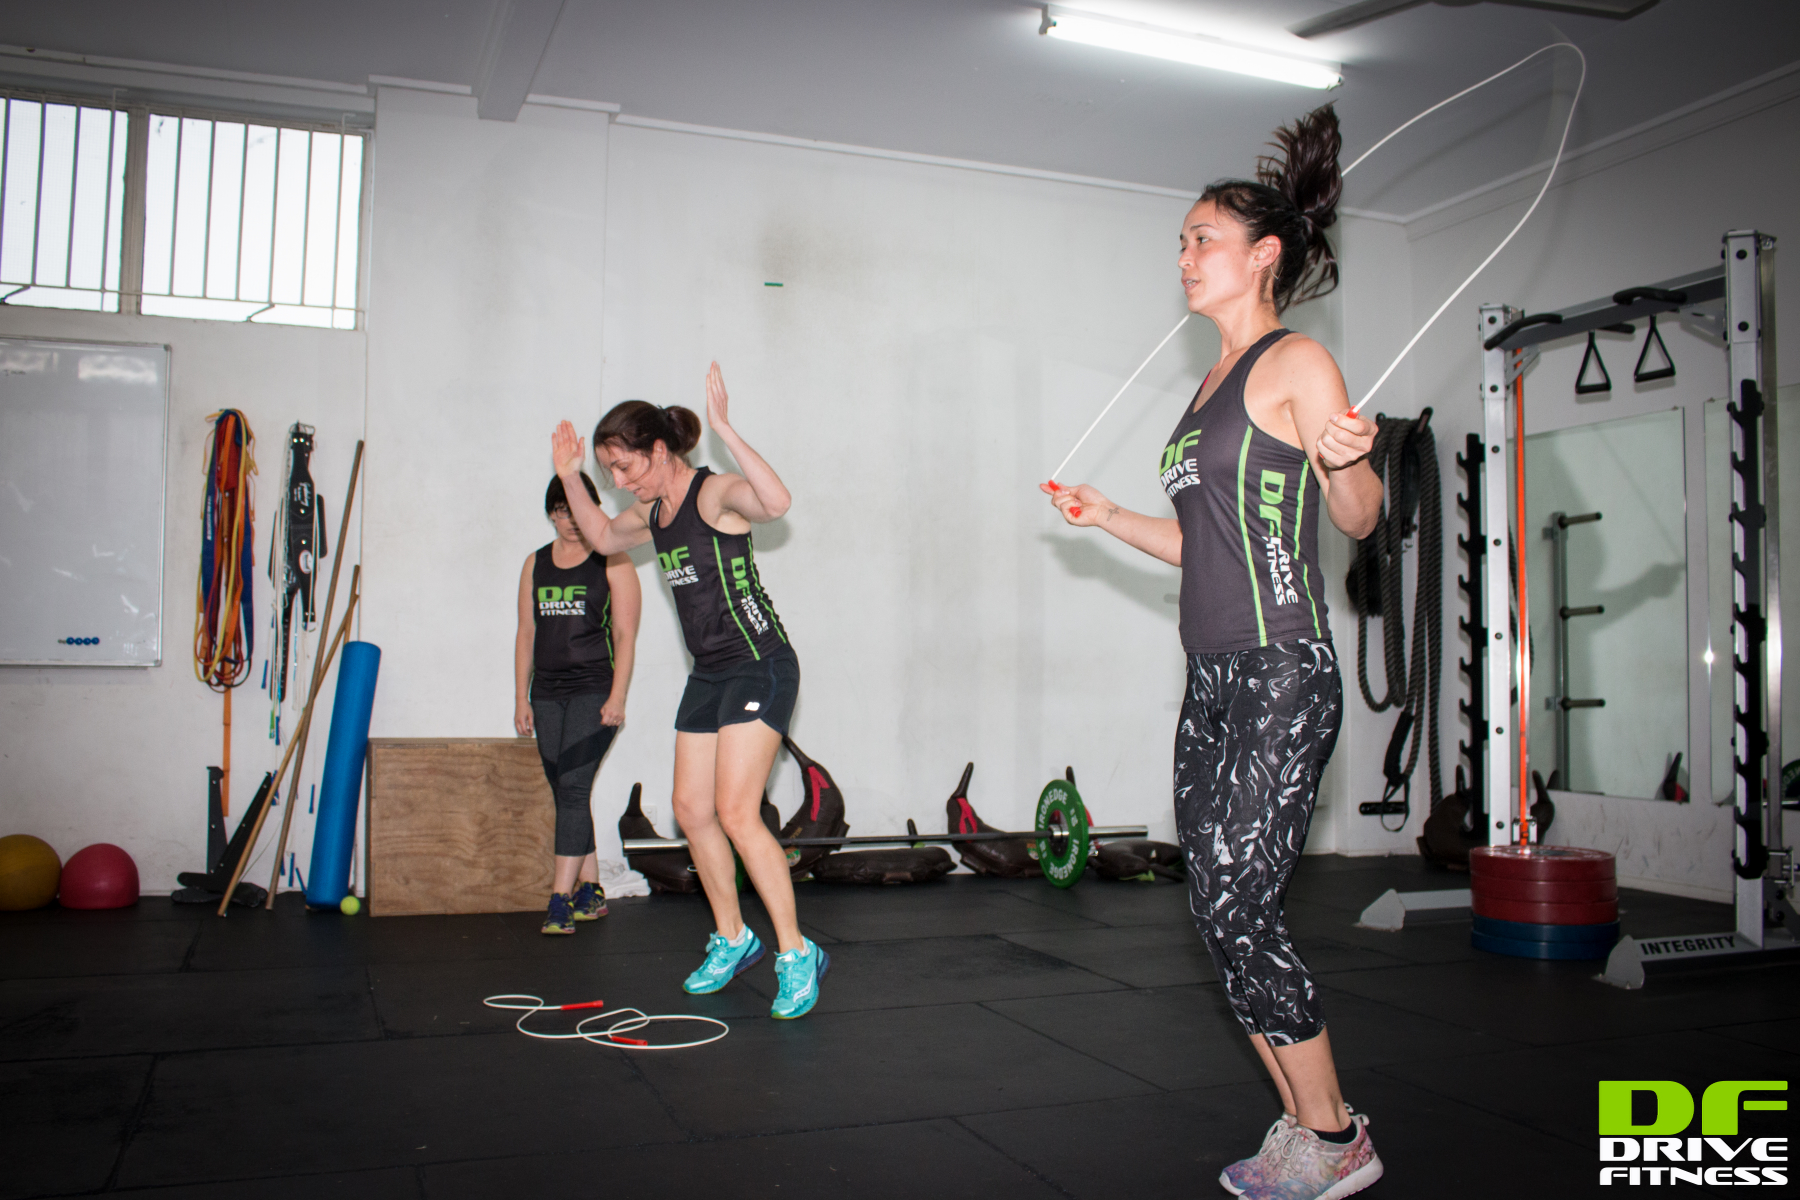 Drive-Fitness-personal-training-brisbane-christmas-workout-2017 (8 of 54).jpg